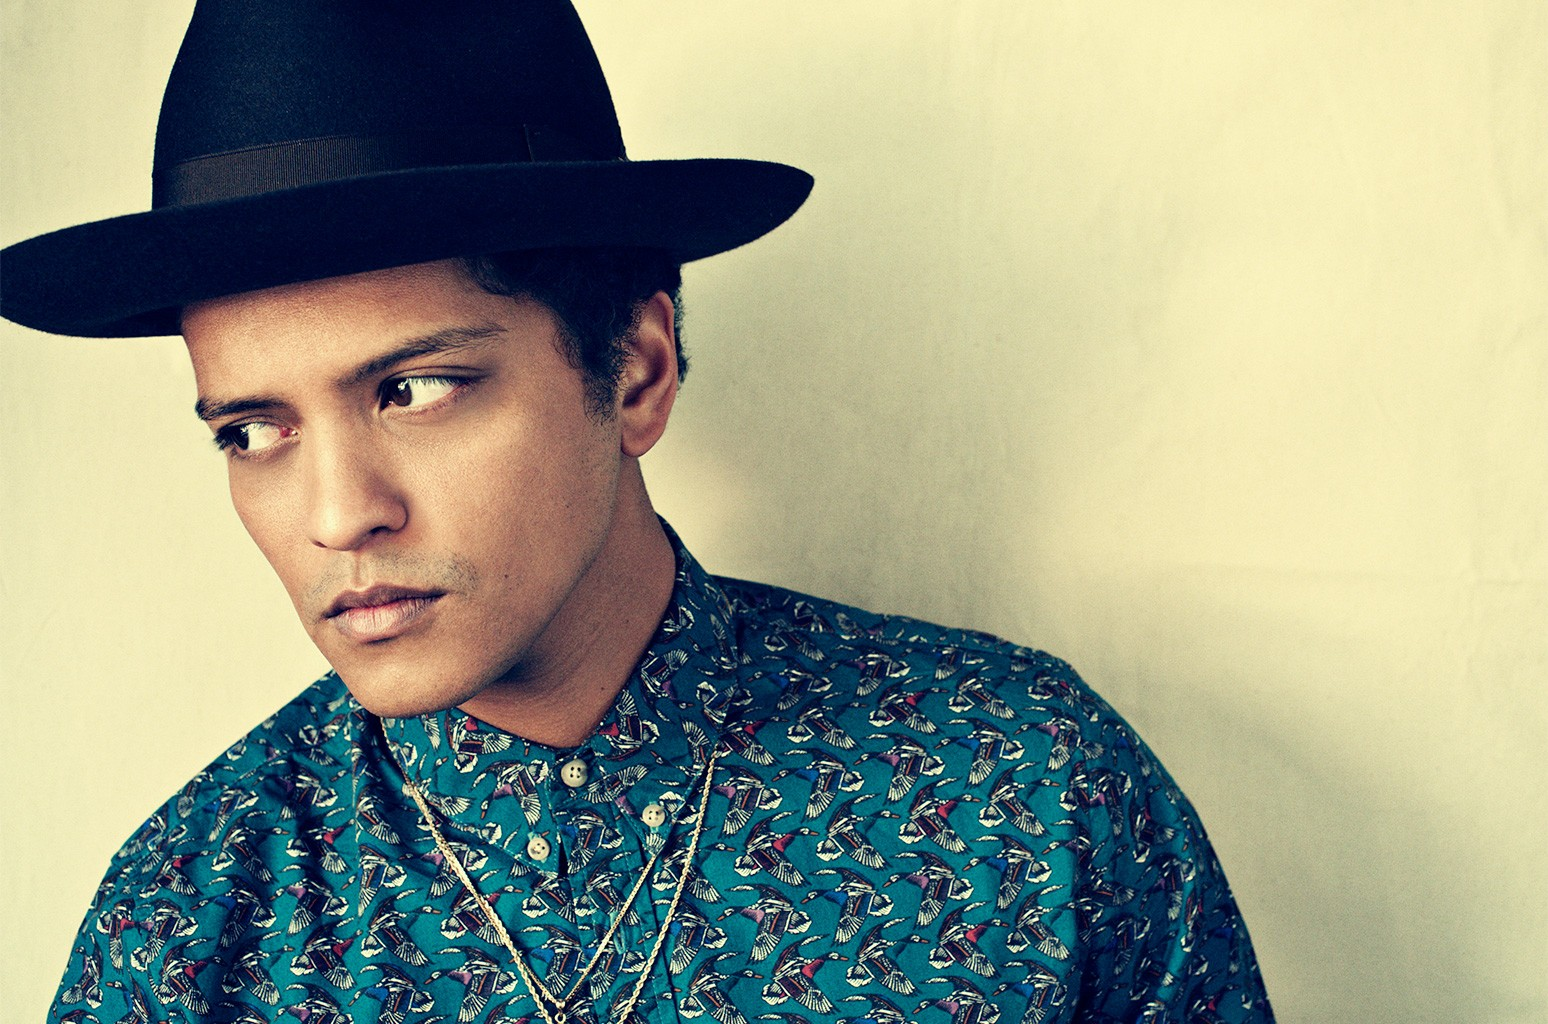 Bruno Mars photographed in 2012.